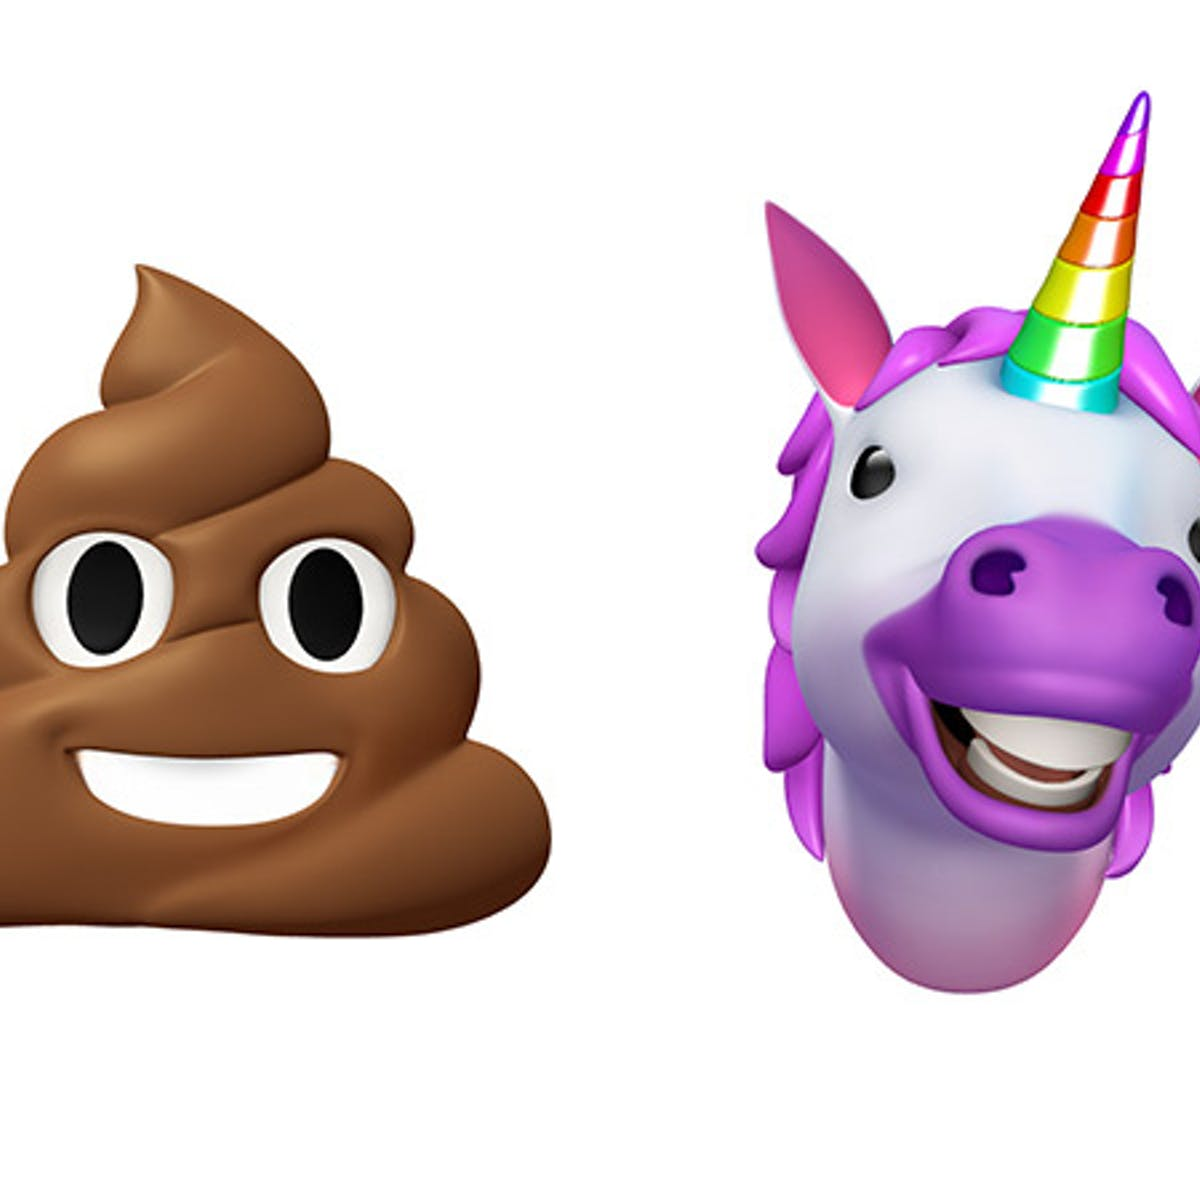 How to Use Animoji, iPhone X's Bizarre Talking Emojis | Inverse